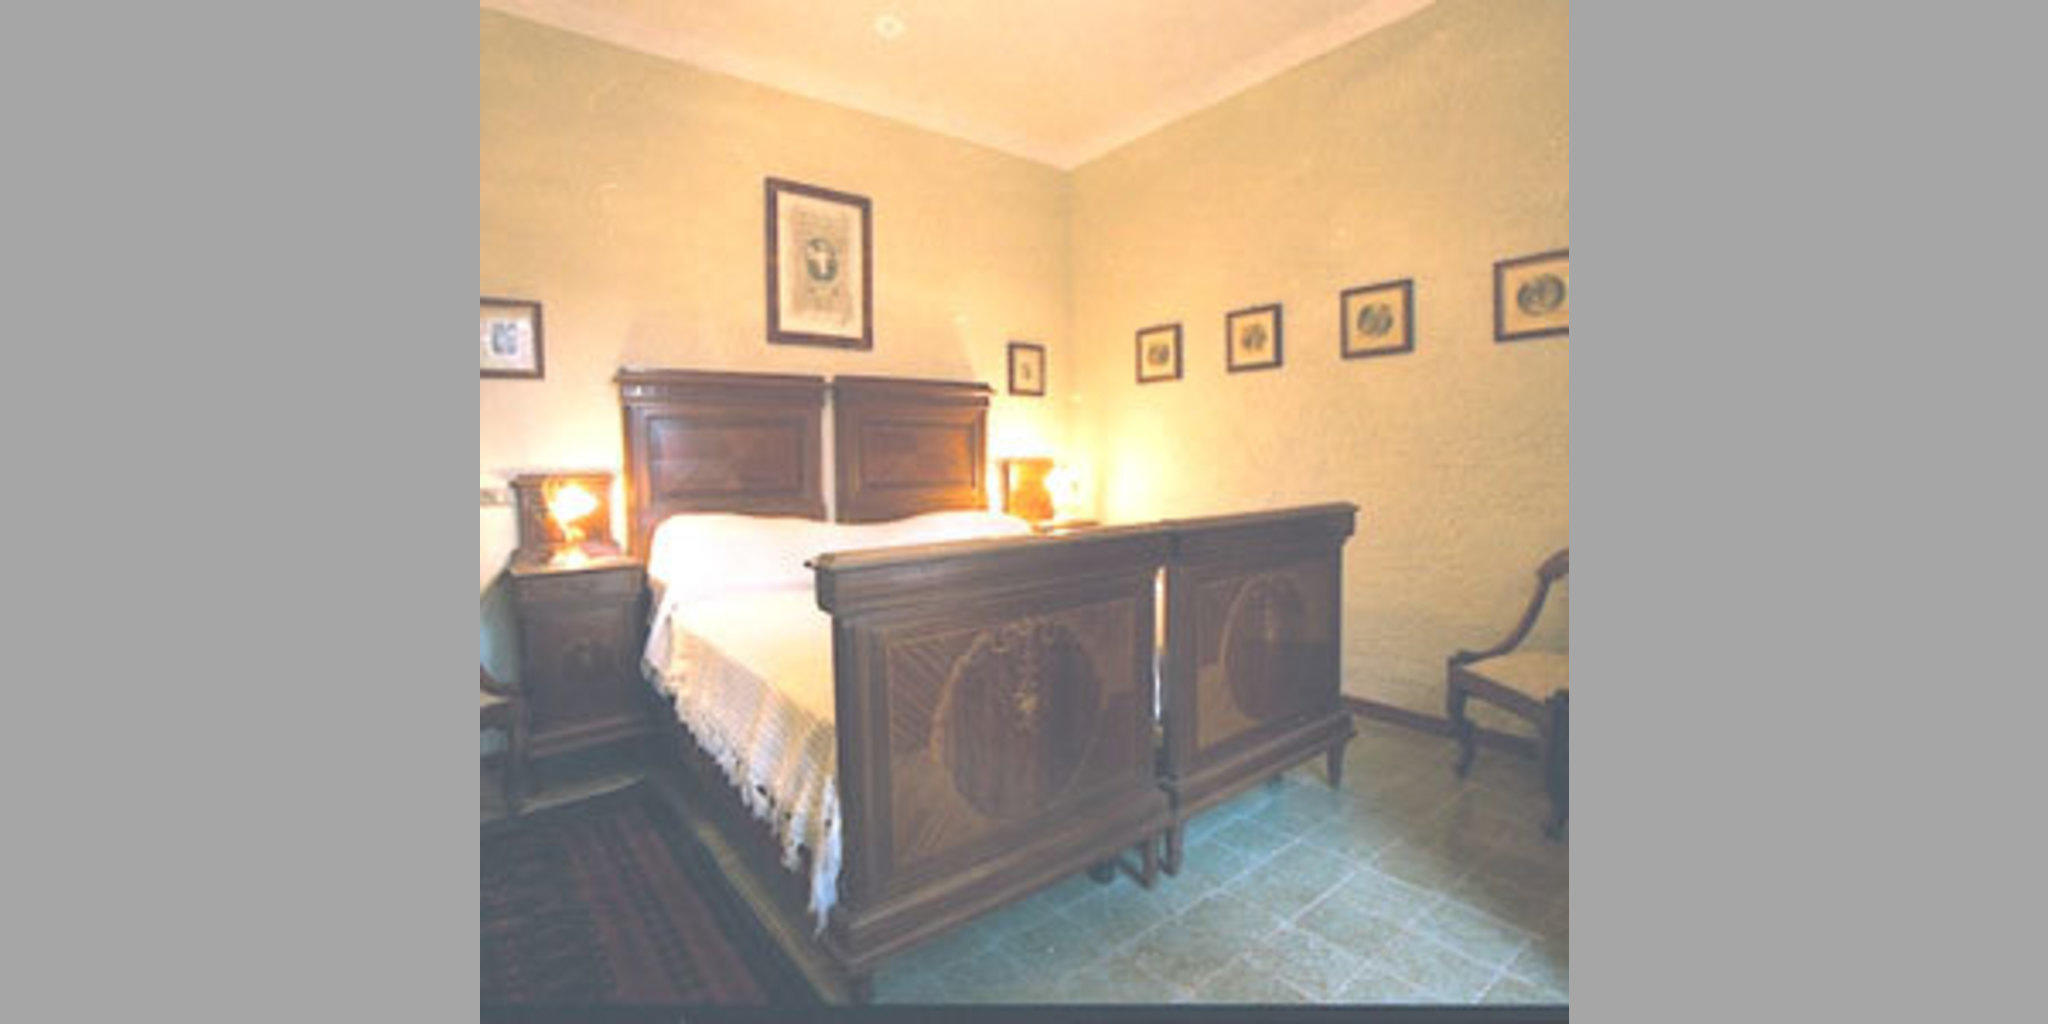 Bed & Breakfast Capena - Madonna Due Ponti